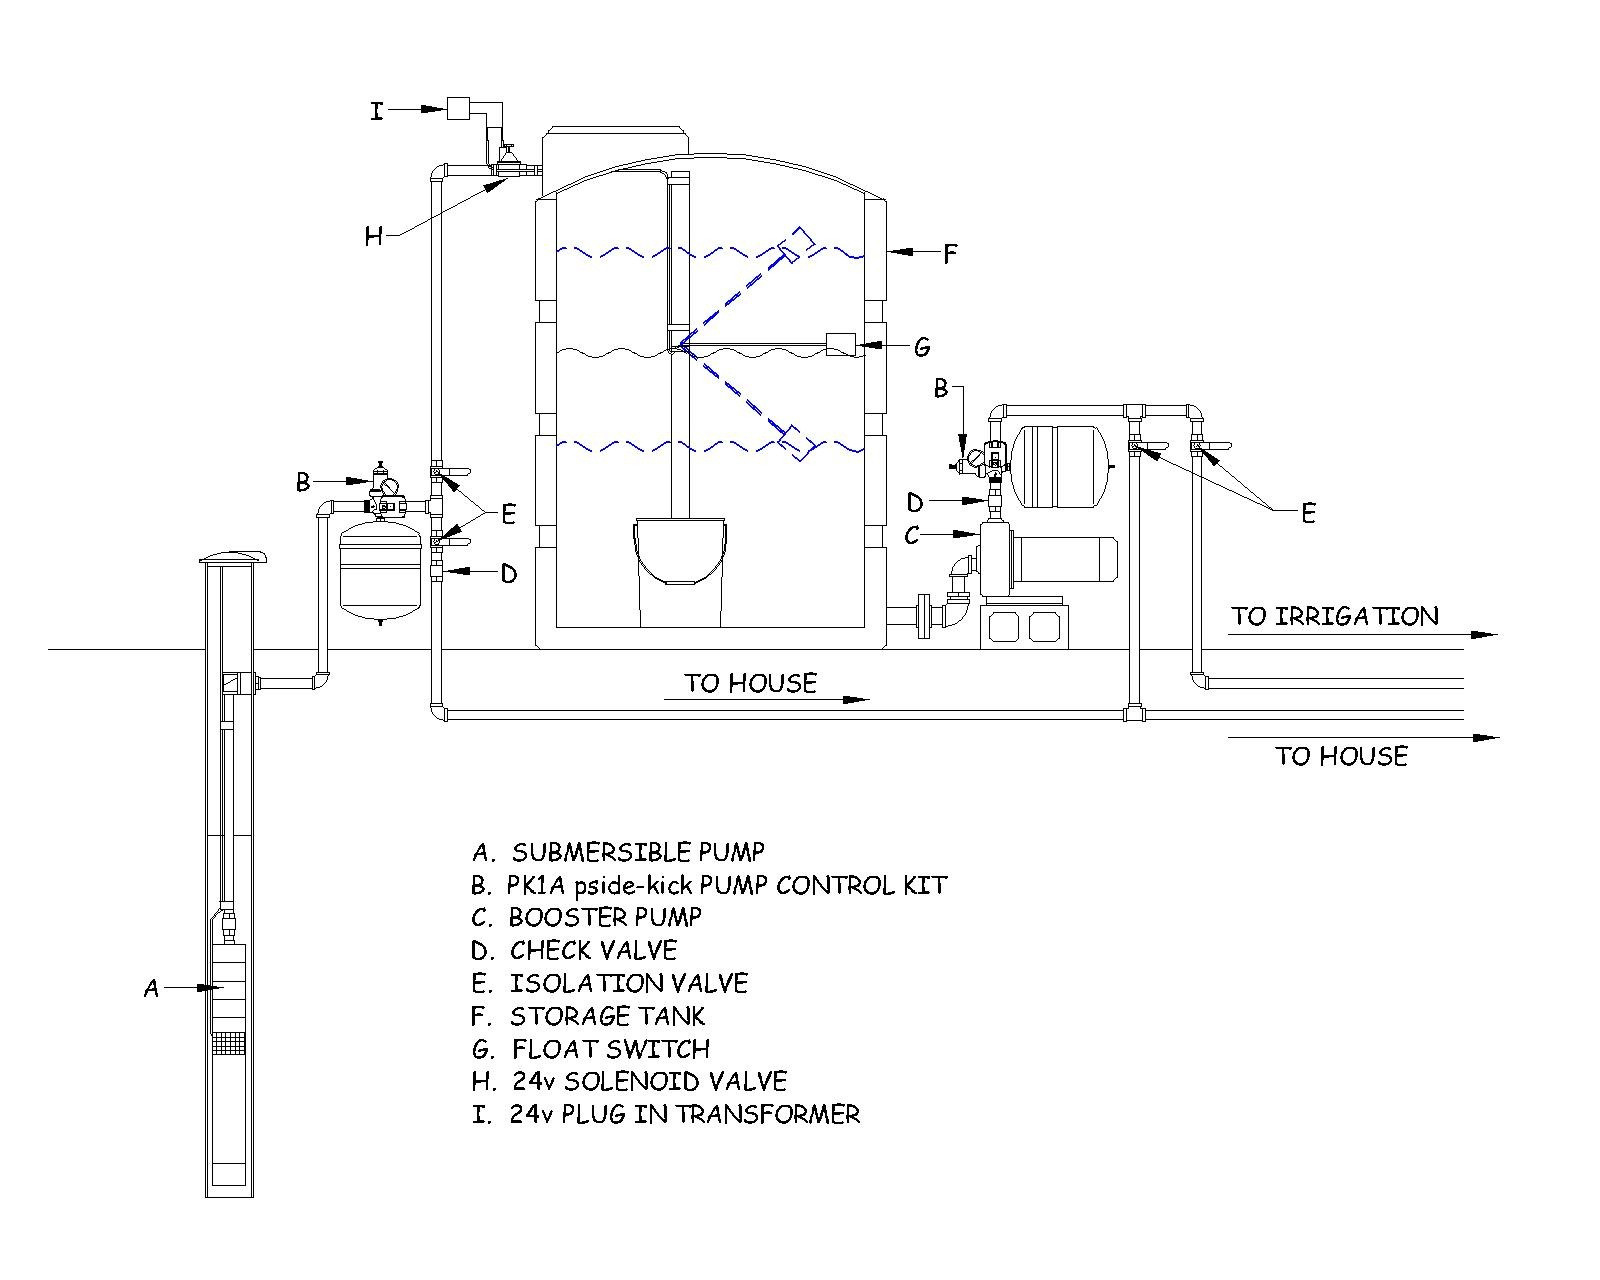 Pressure Switch Square D 9013fsg2m4 Wiring Diagram Nice Place To On Data Rh 16 1 Mercedes Aktion Tesmer De Air Compressor